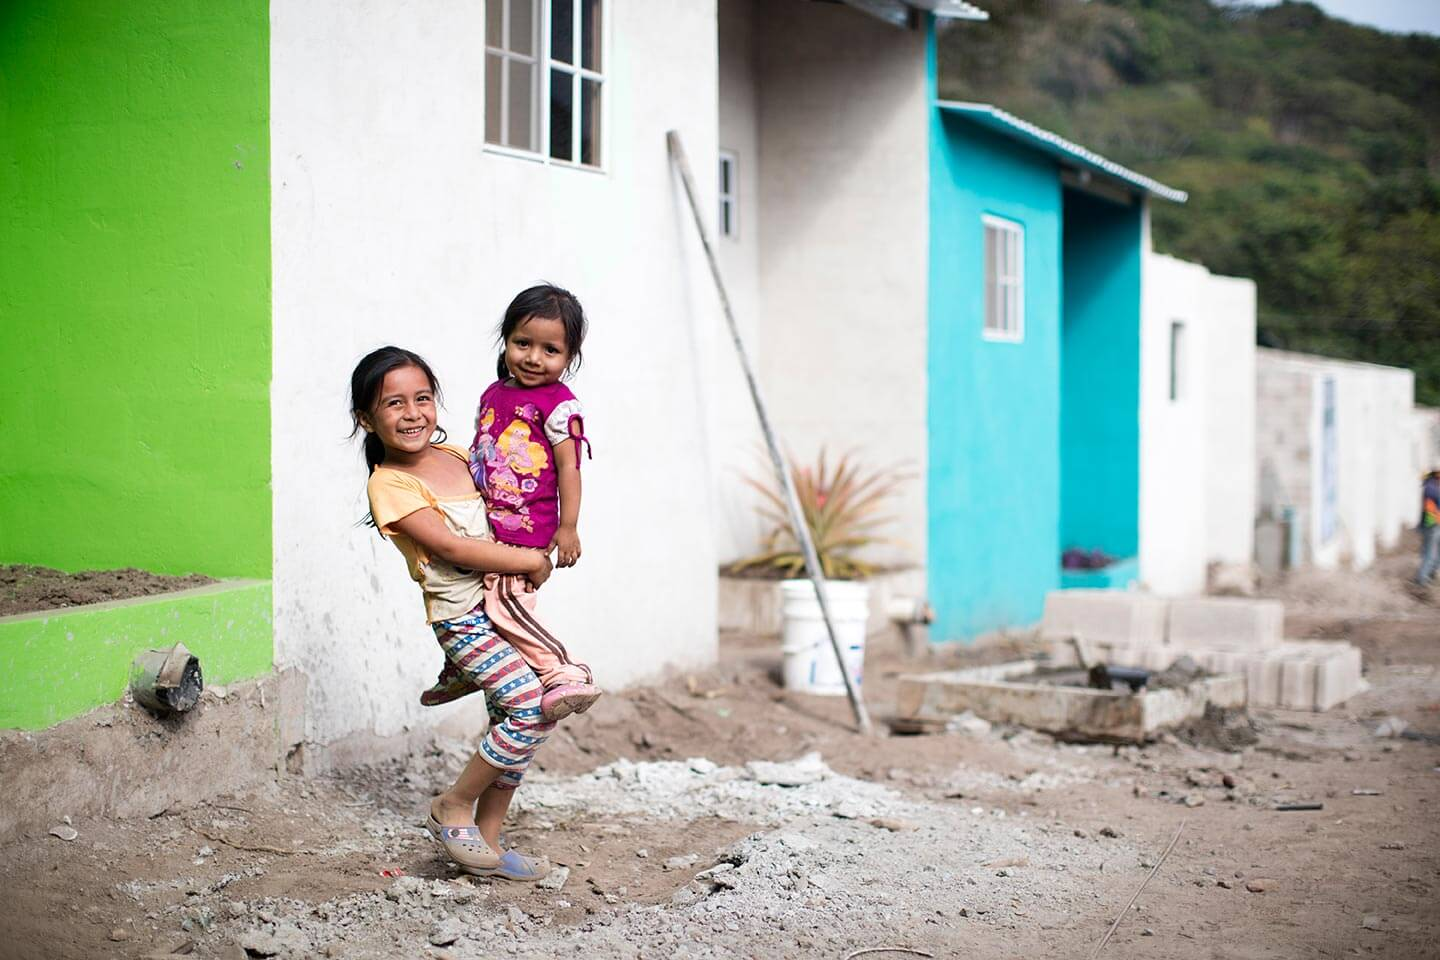 A family celebrates their new home in El Salvador.